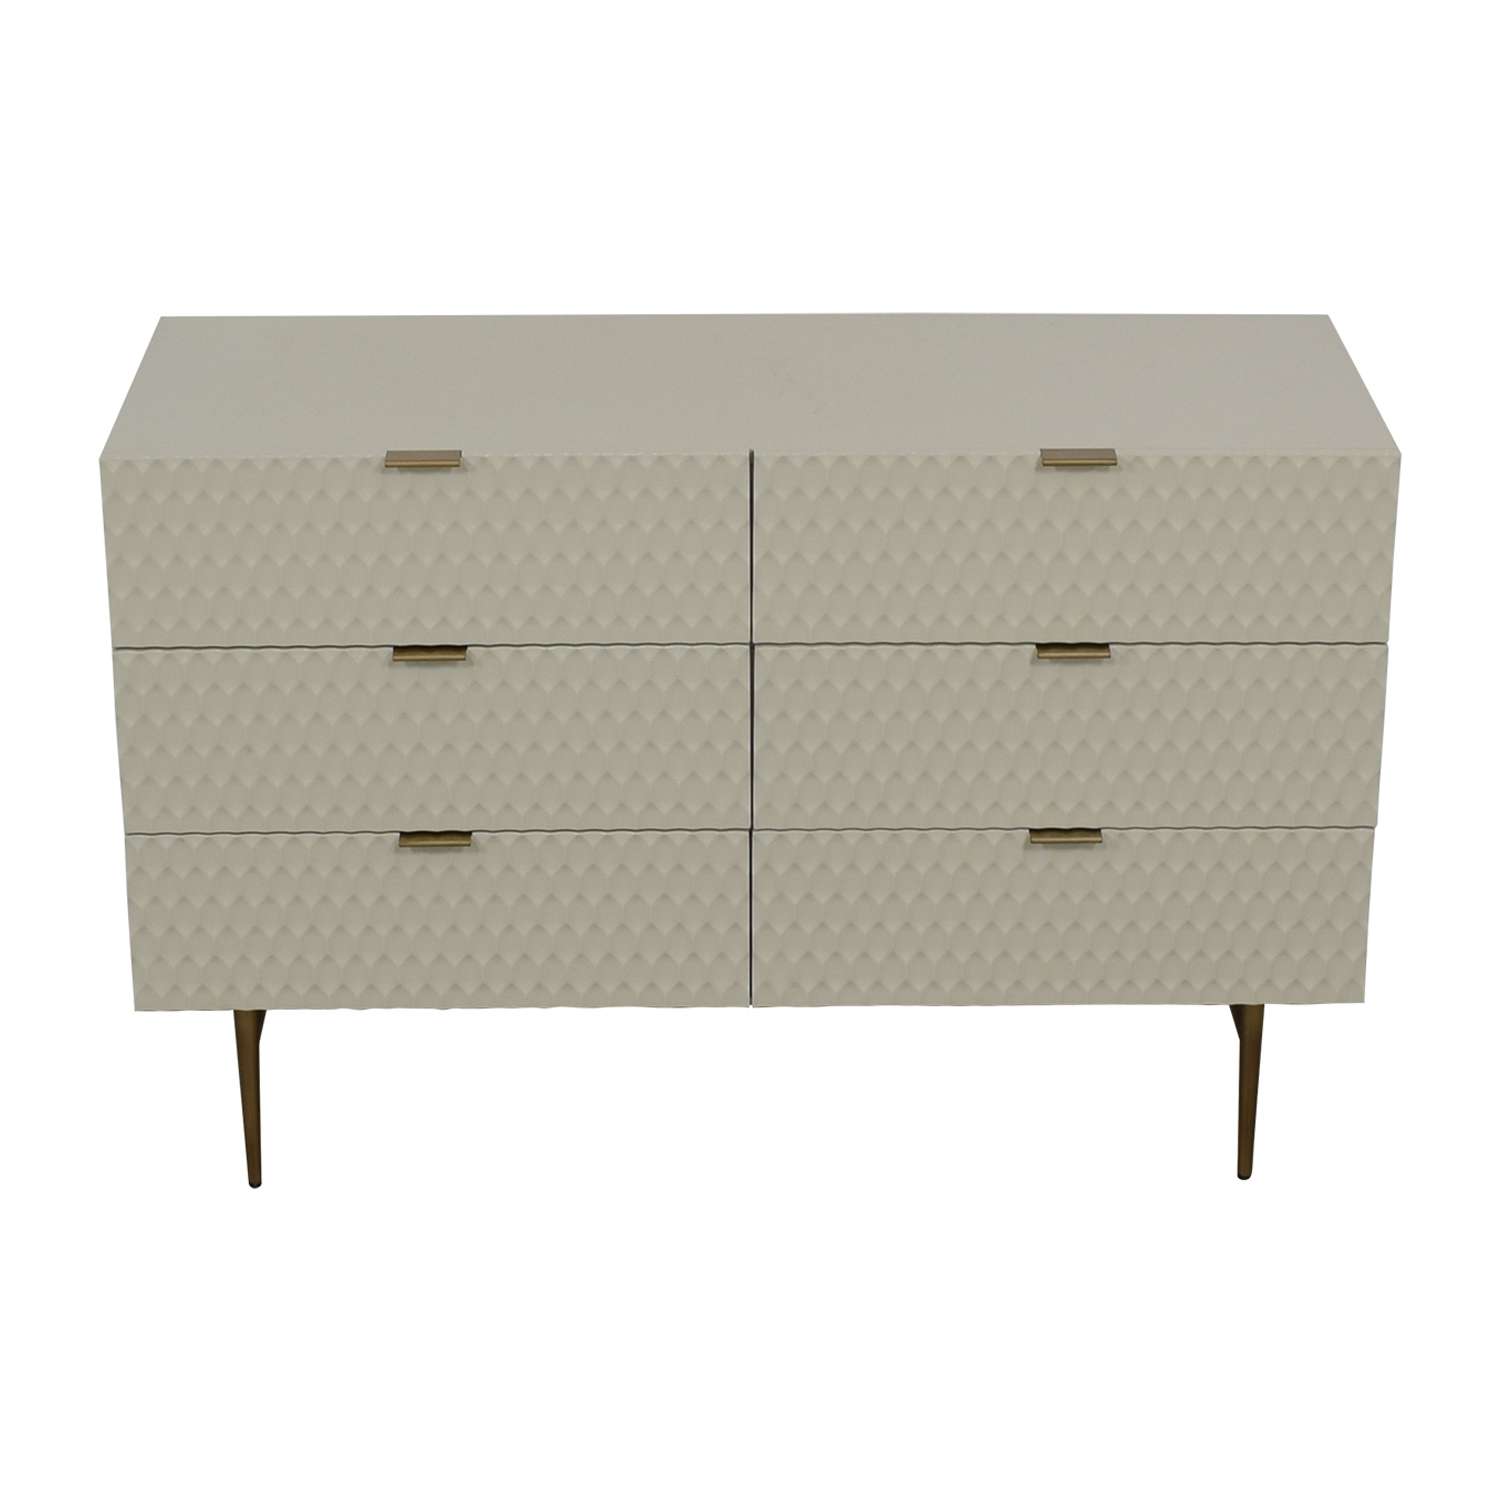 West Elm West Elm Audrey Six-Drawer Dresser Dressers